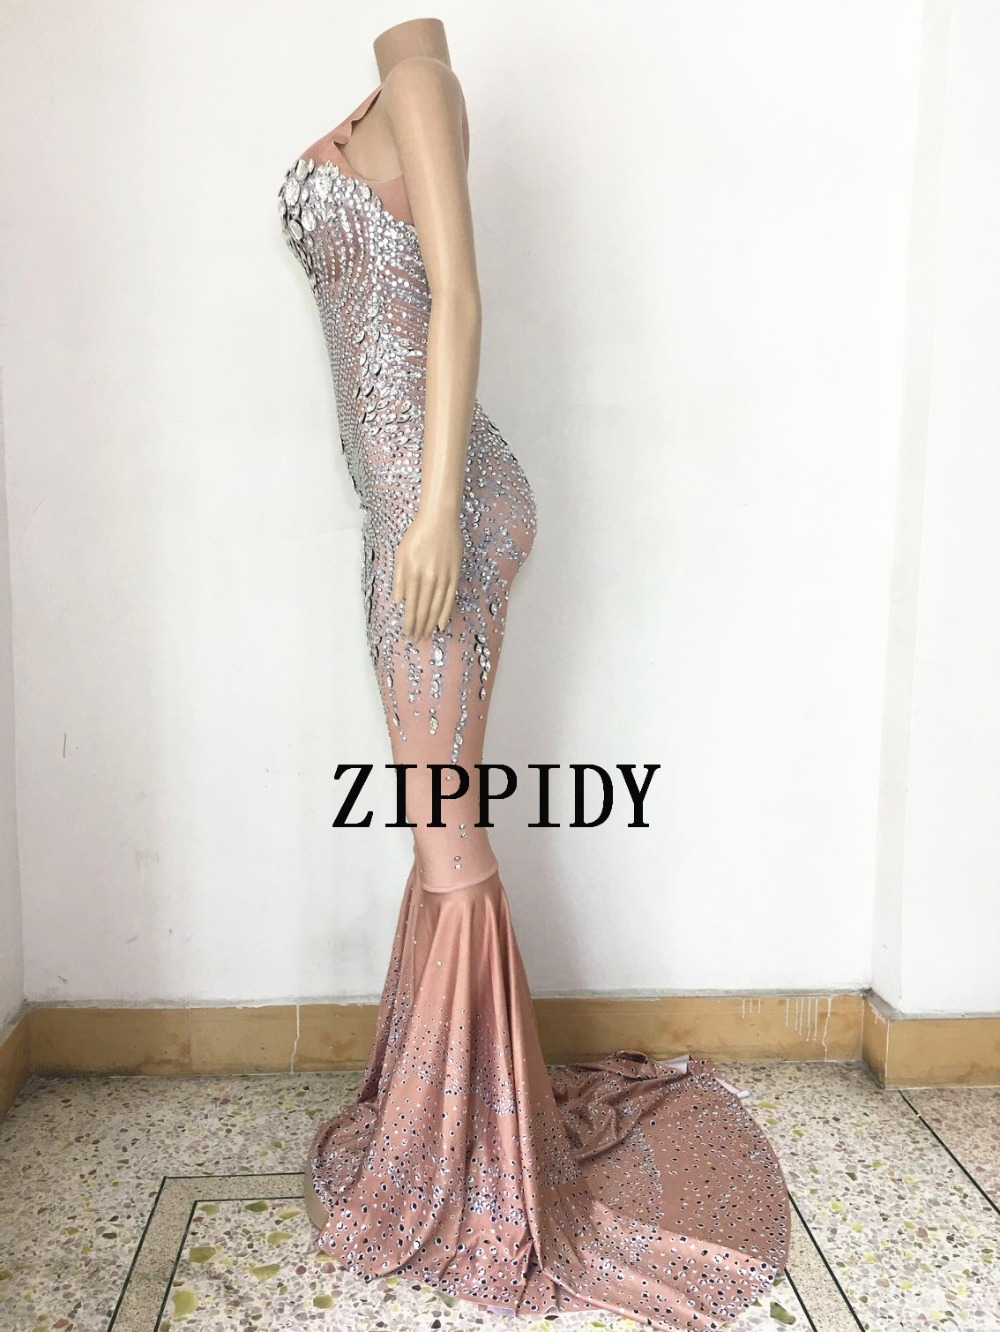 Fashion Sparkly Big Crystals Dress Long Train Women Birthday Costume Prom Celebrate Nude Big Tail Dresses Evening Outfit-in Dresses from Women's Clothing    2